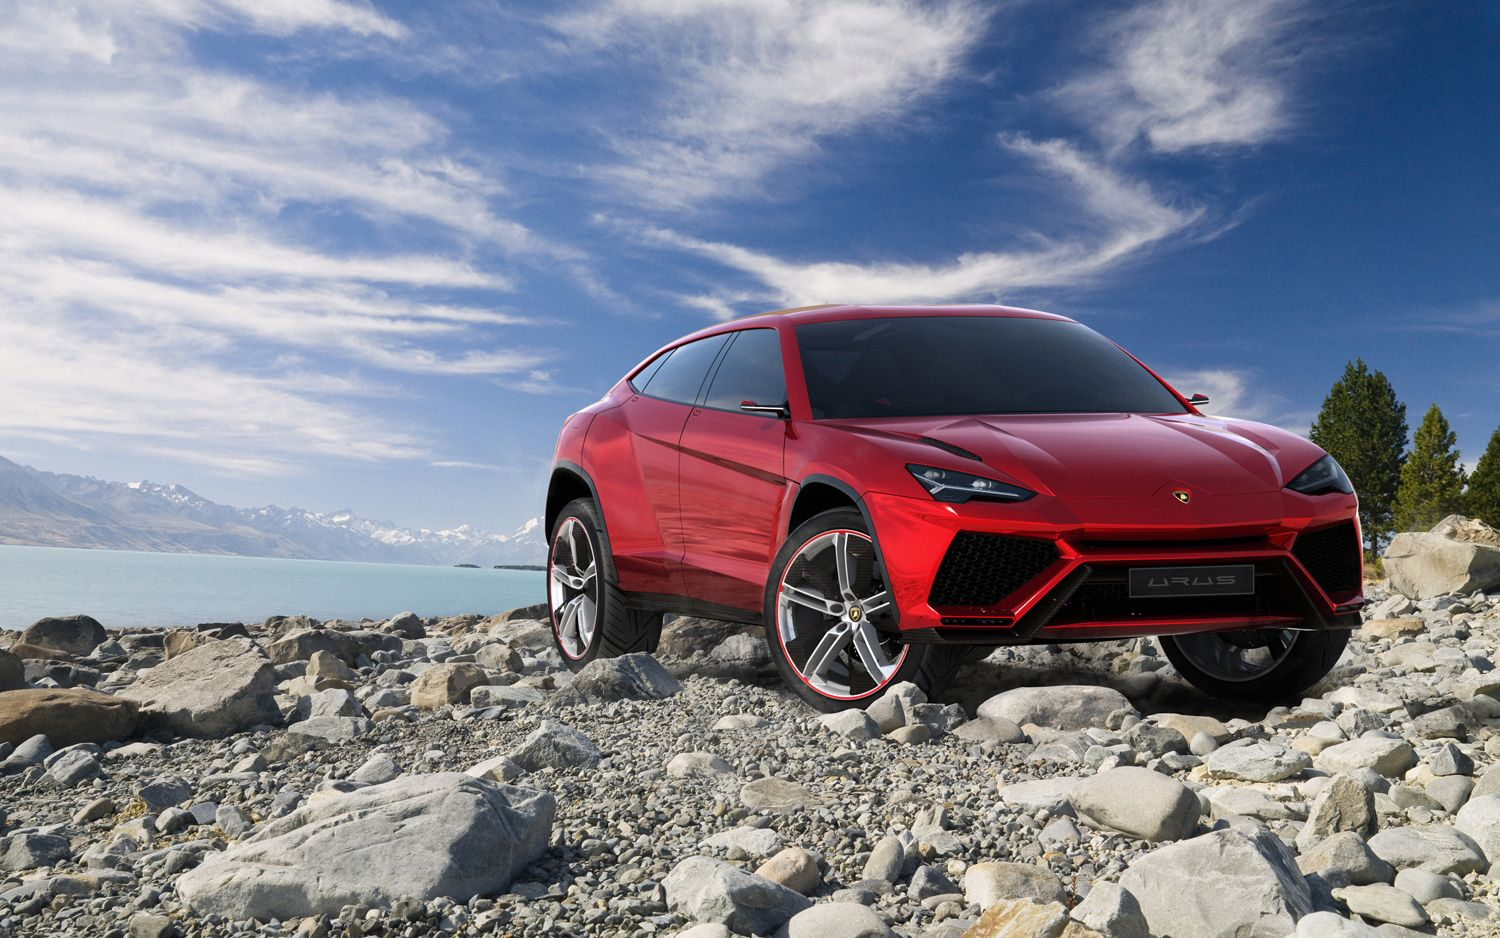 Lamborghini To Release Replacement To Off-Road